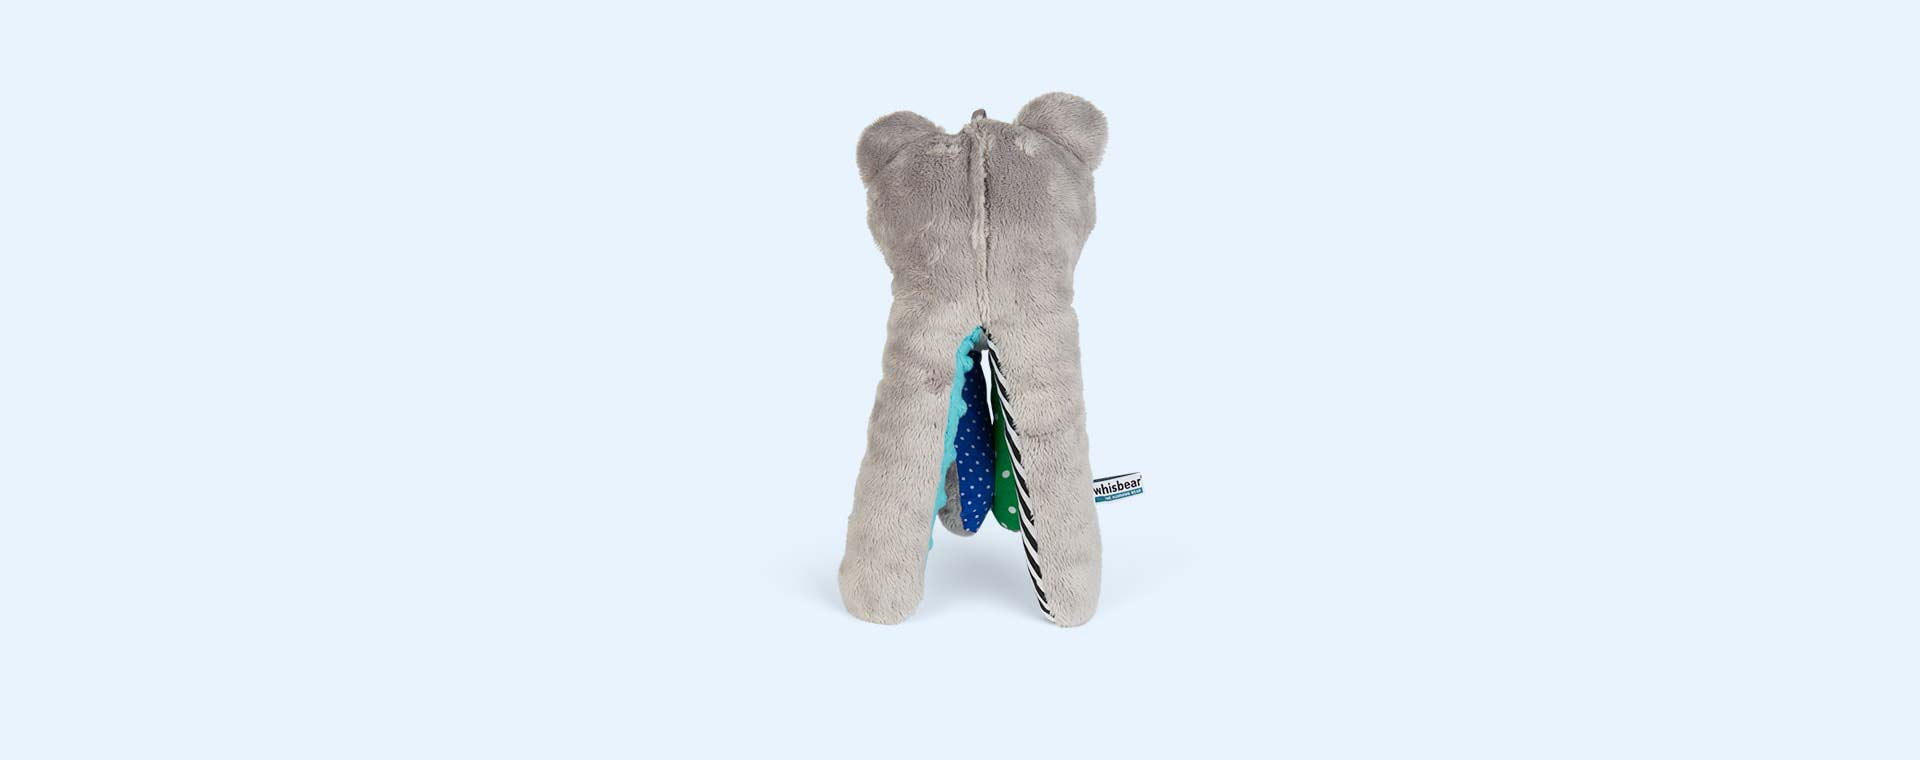 Turquoise Whisbear The Humming Bear